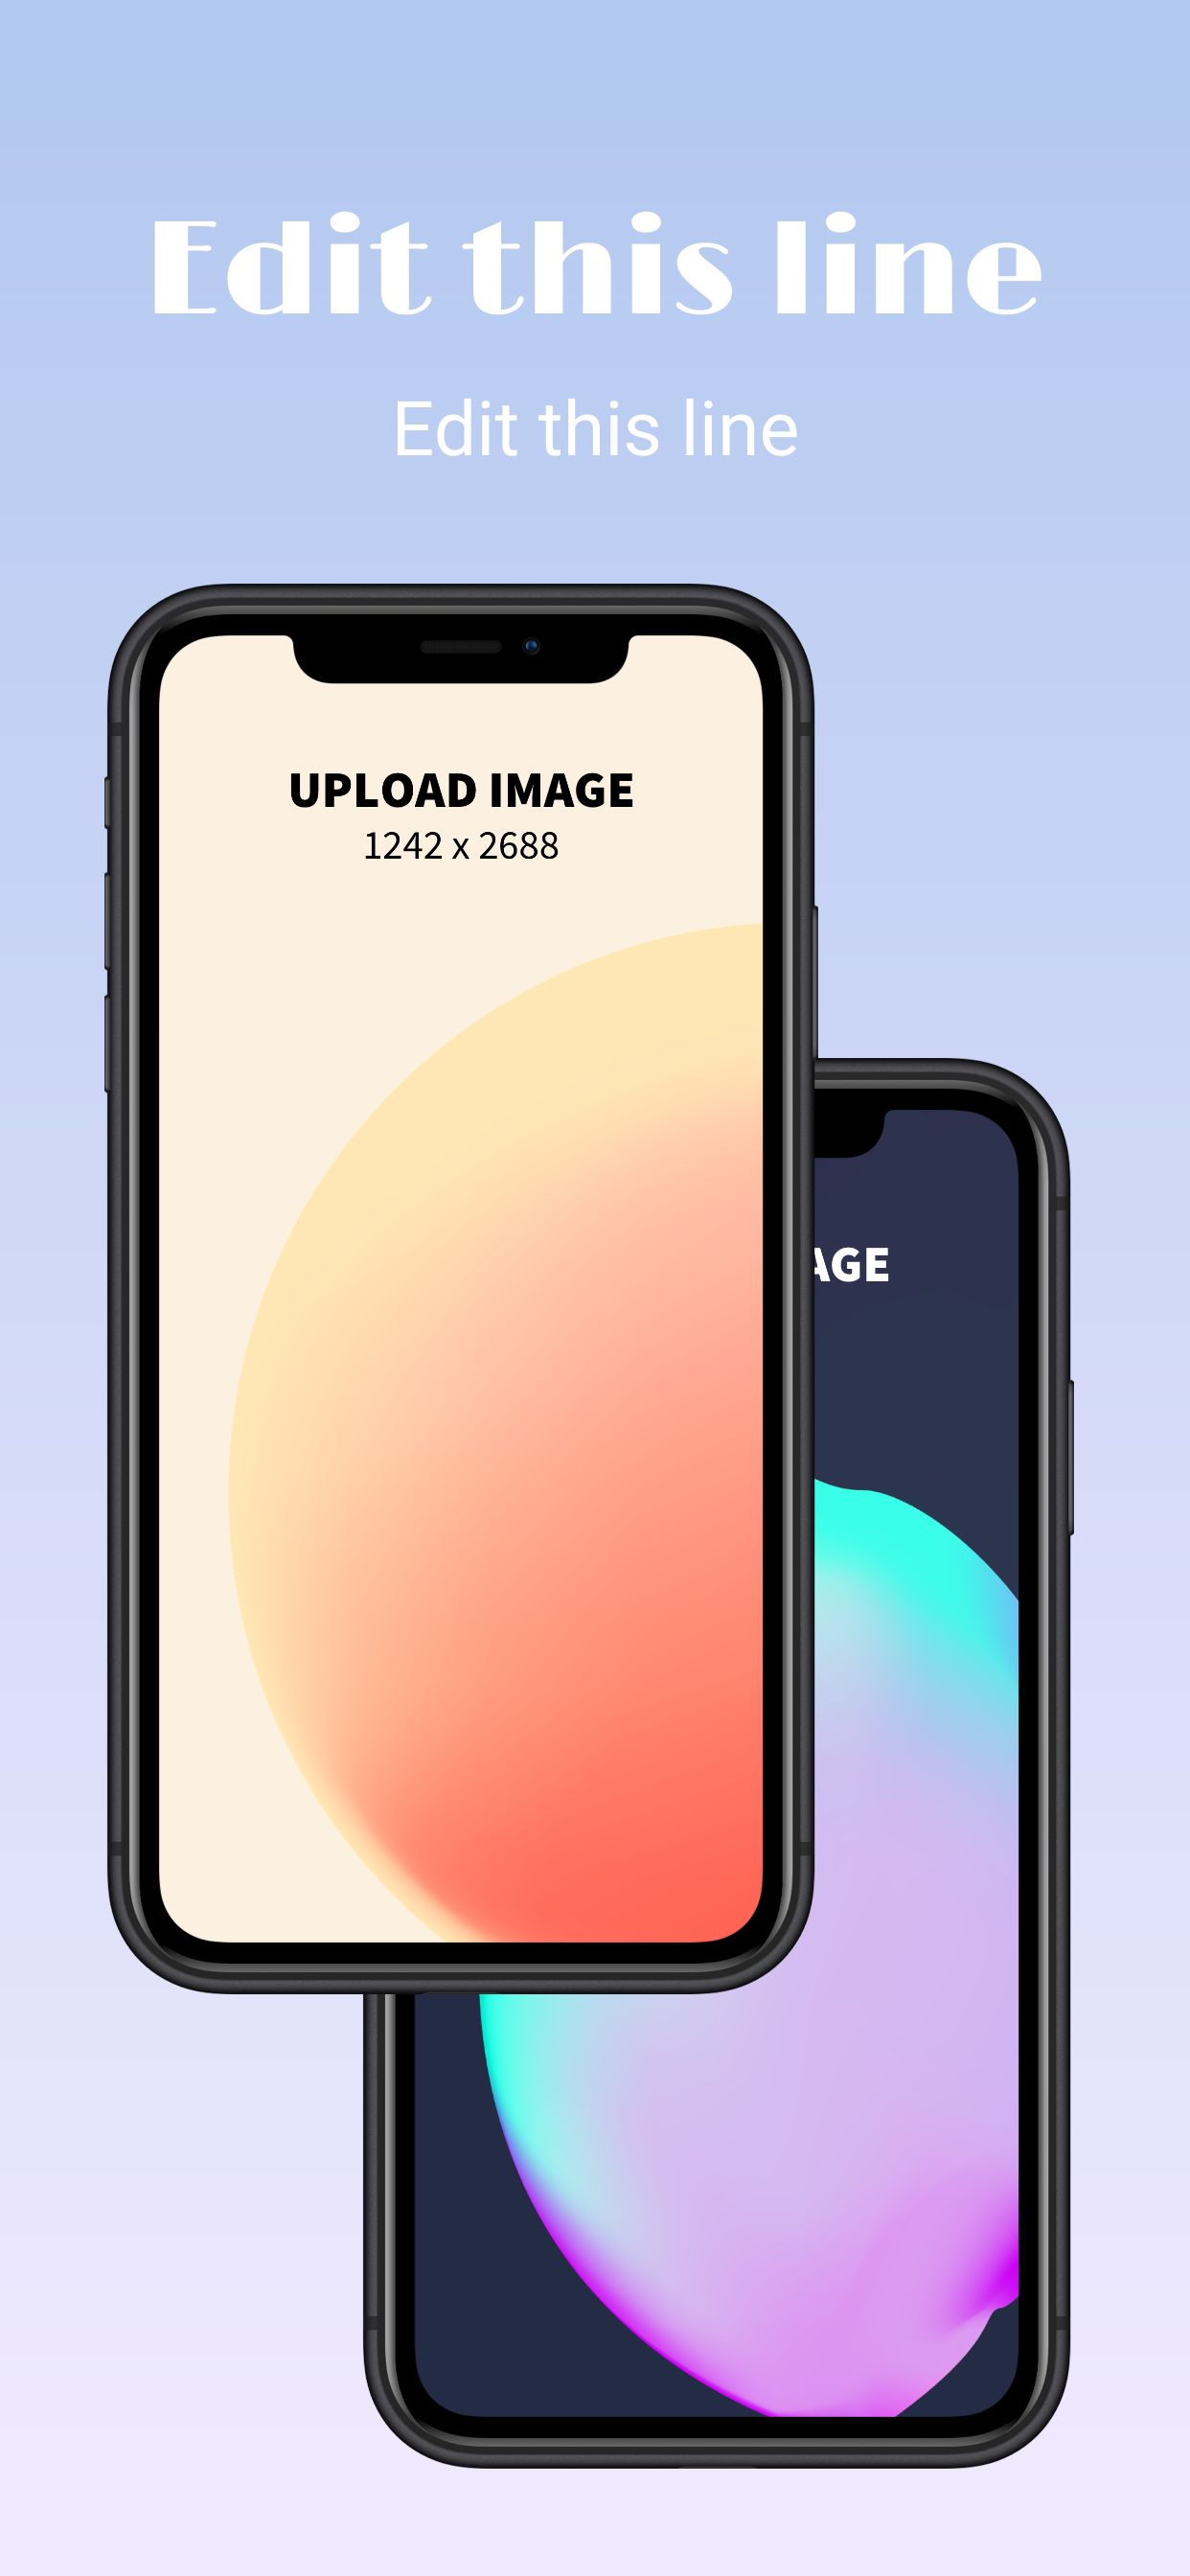 iPhone XS Max Screenshot 8 template. Quickly edit text, colors, images, and more for free.